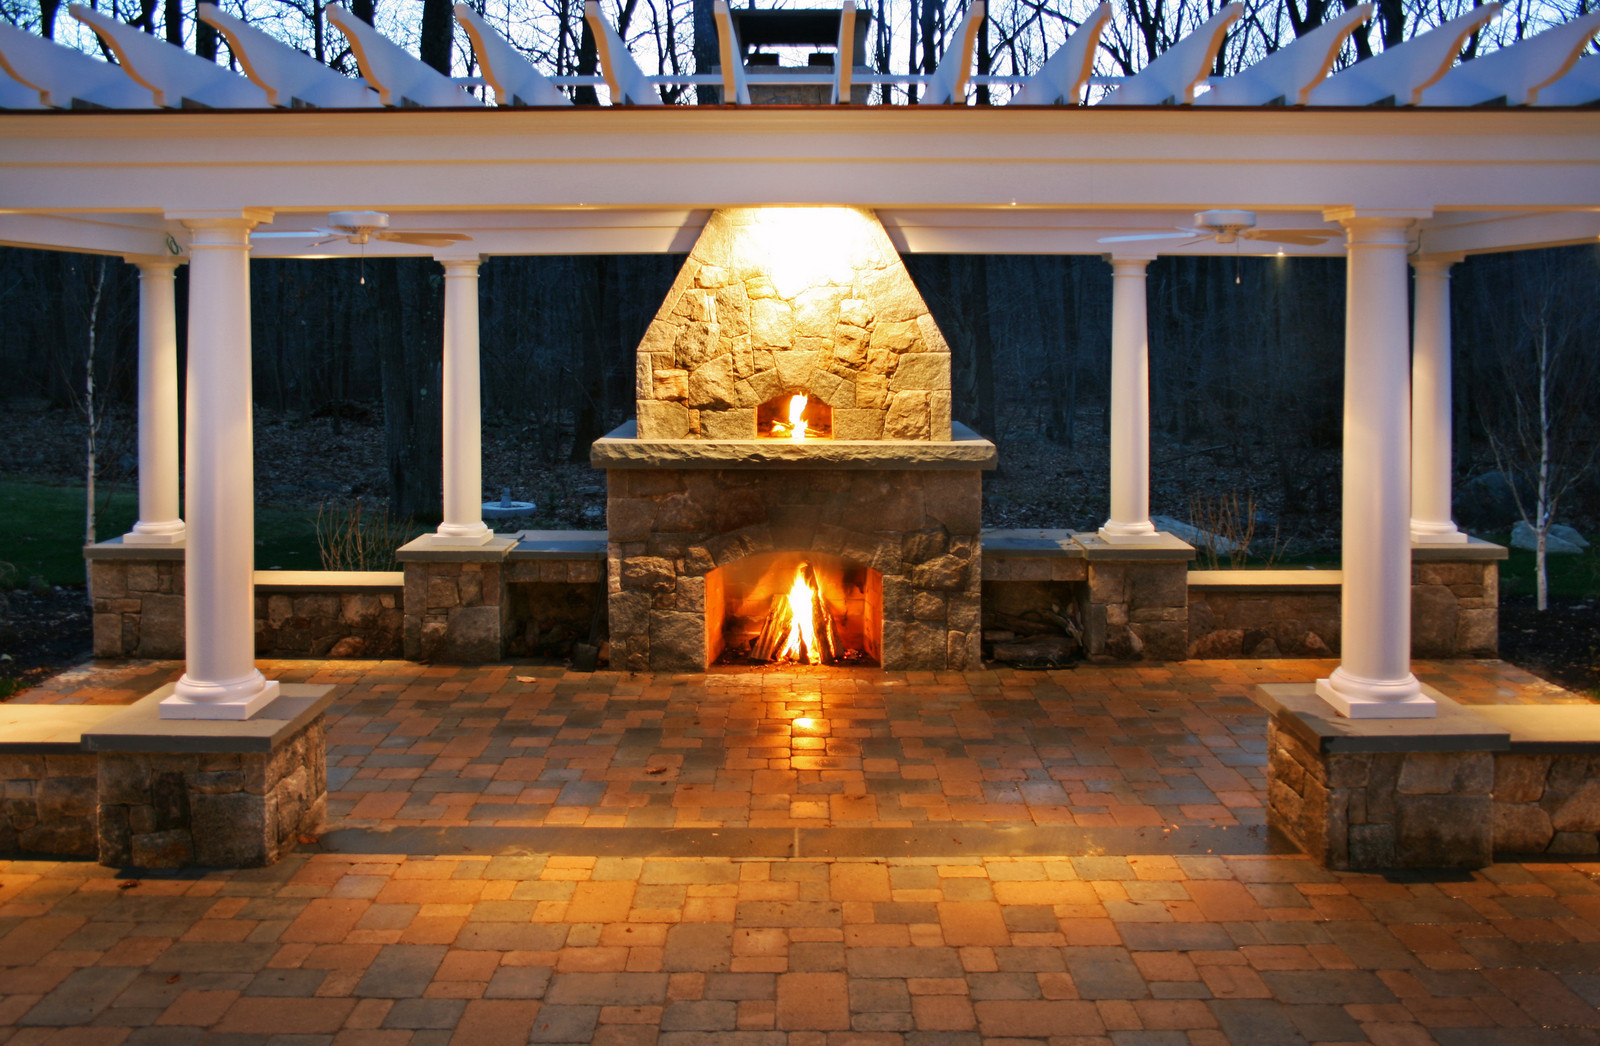 Fireplace lit at night